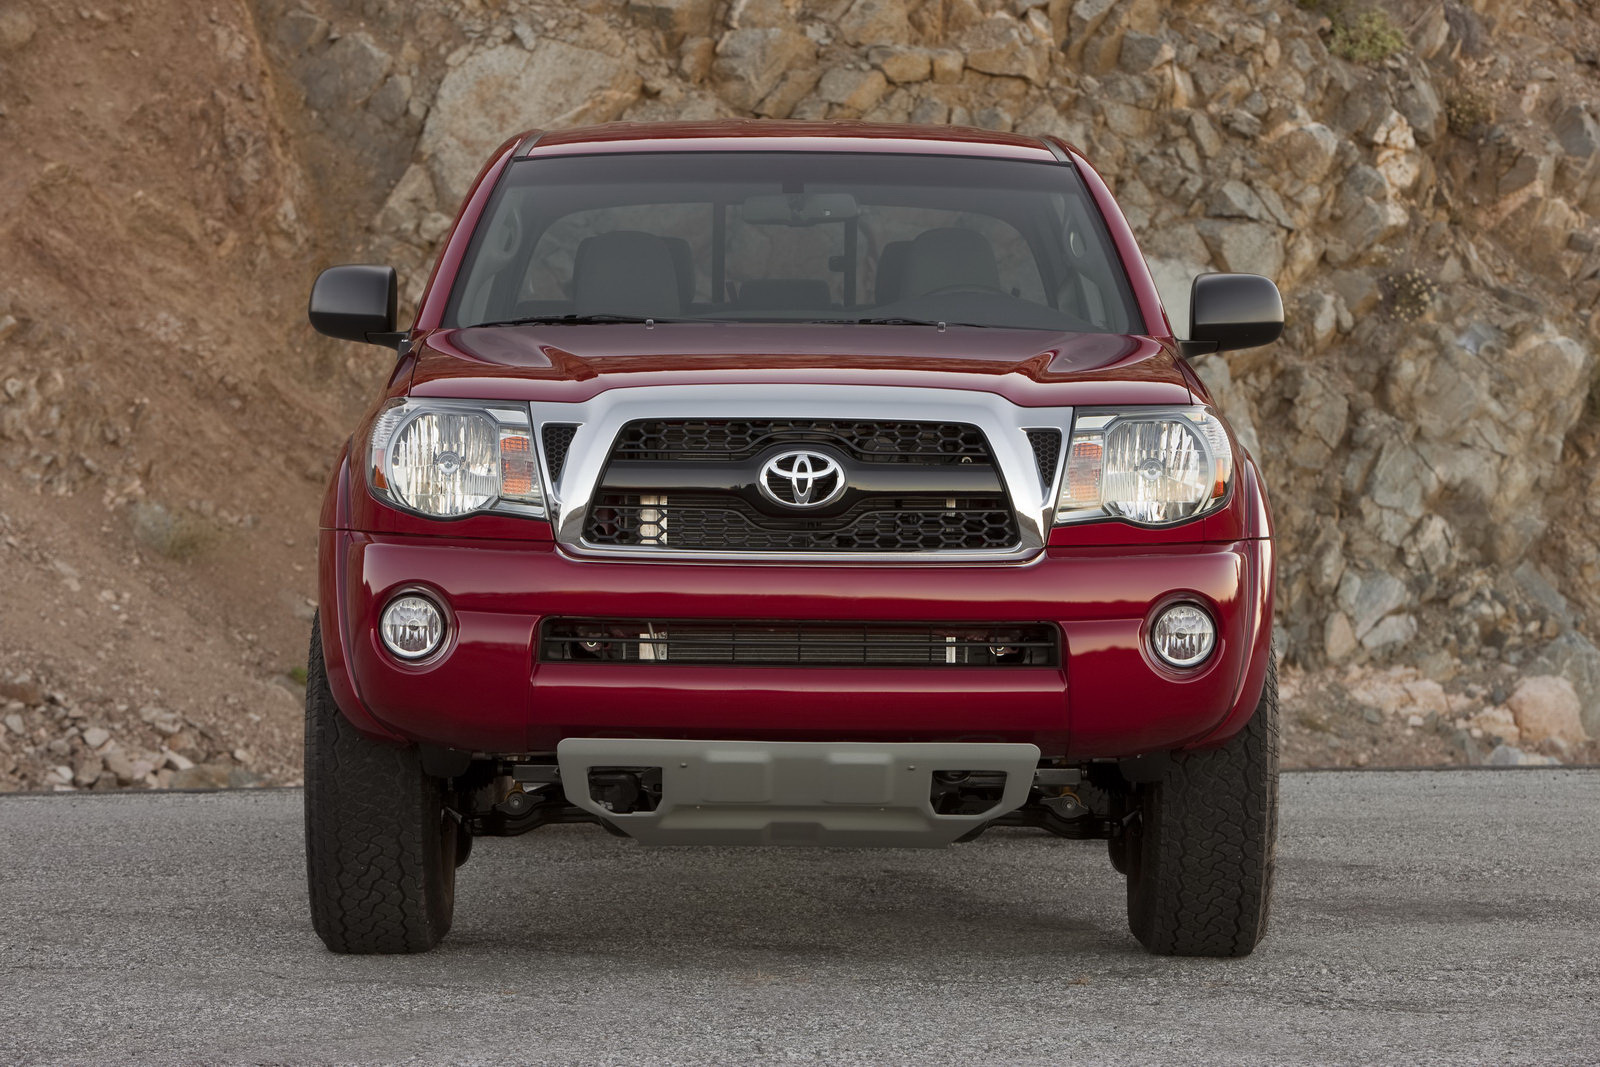 2011 toyota tacoma trd tx pro first look photos. Black Bedroom Furniture Sets. Home Design Ideas